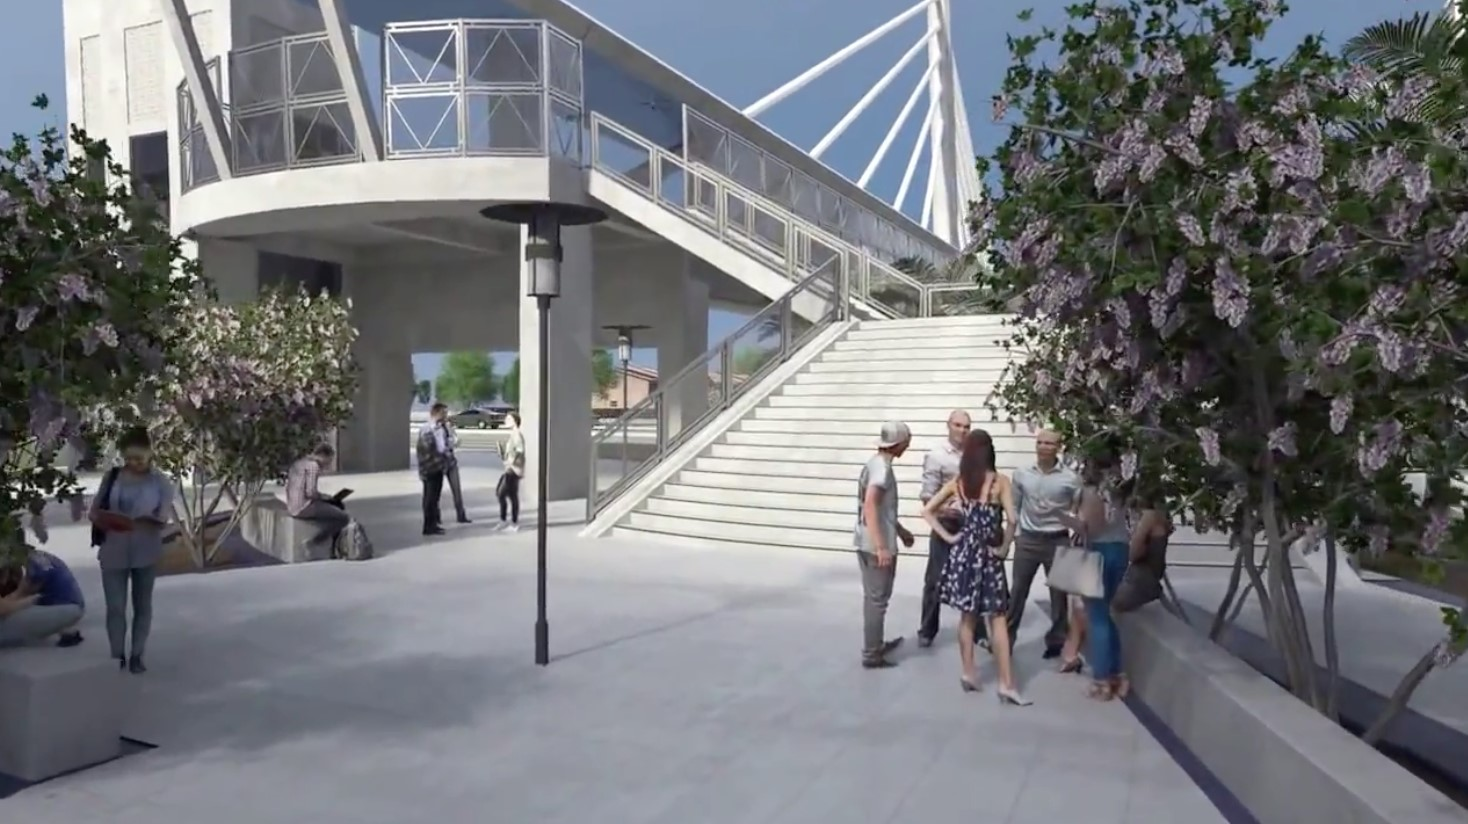 Pedestrian bridge rendering 2.5.16 3